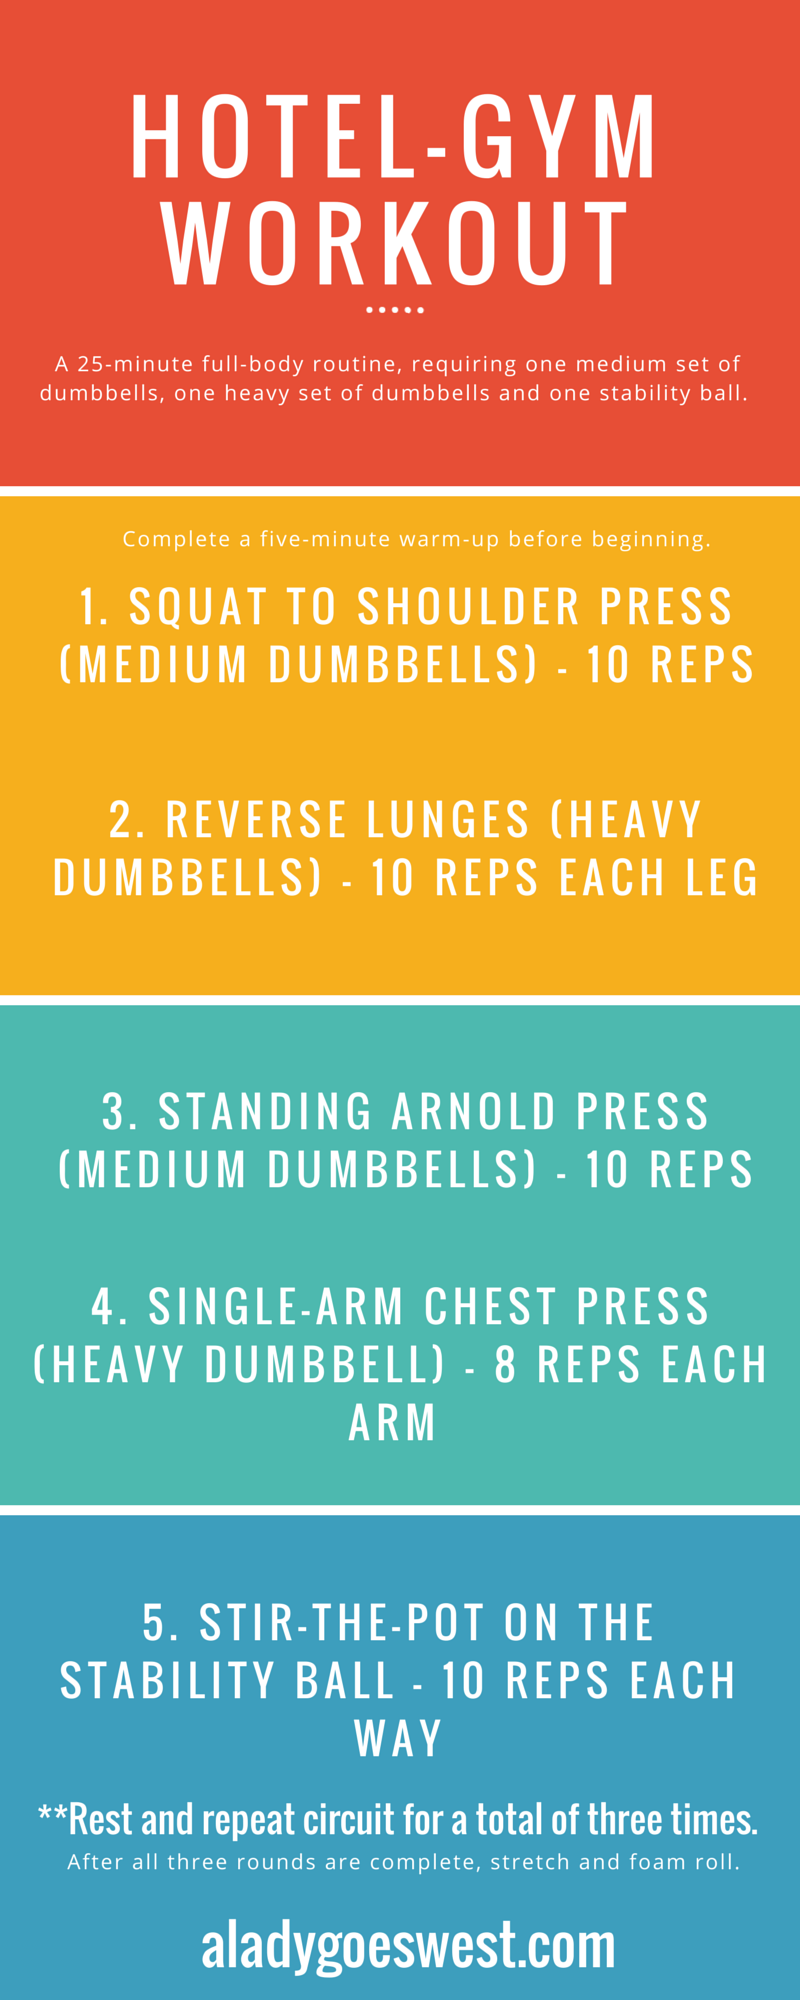 A short-on-time hotel-gym dumbbell workout